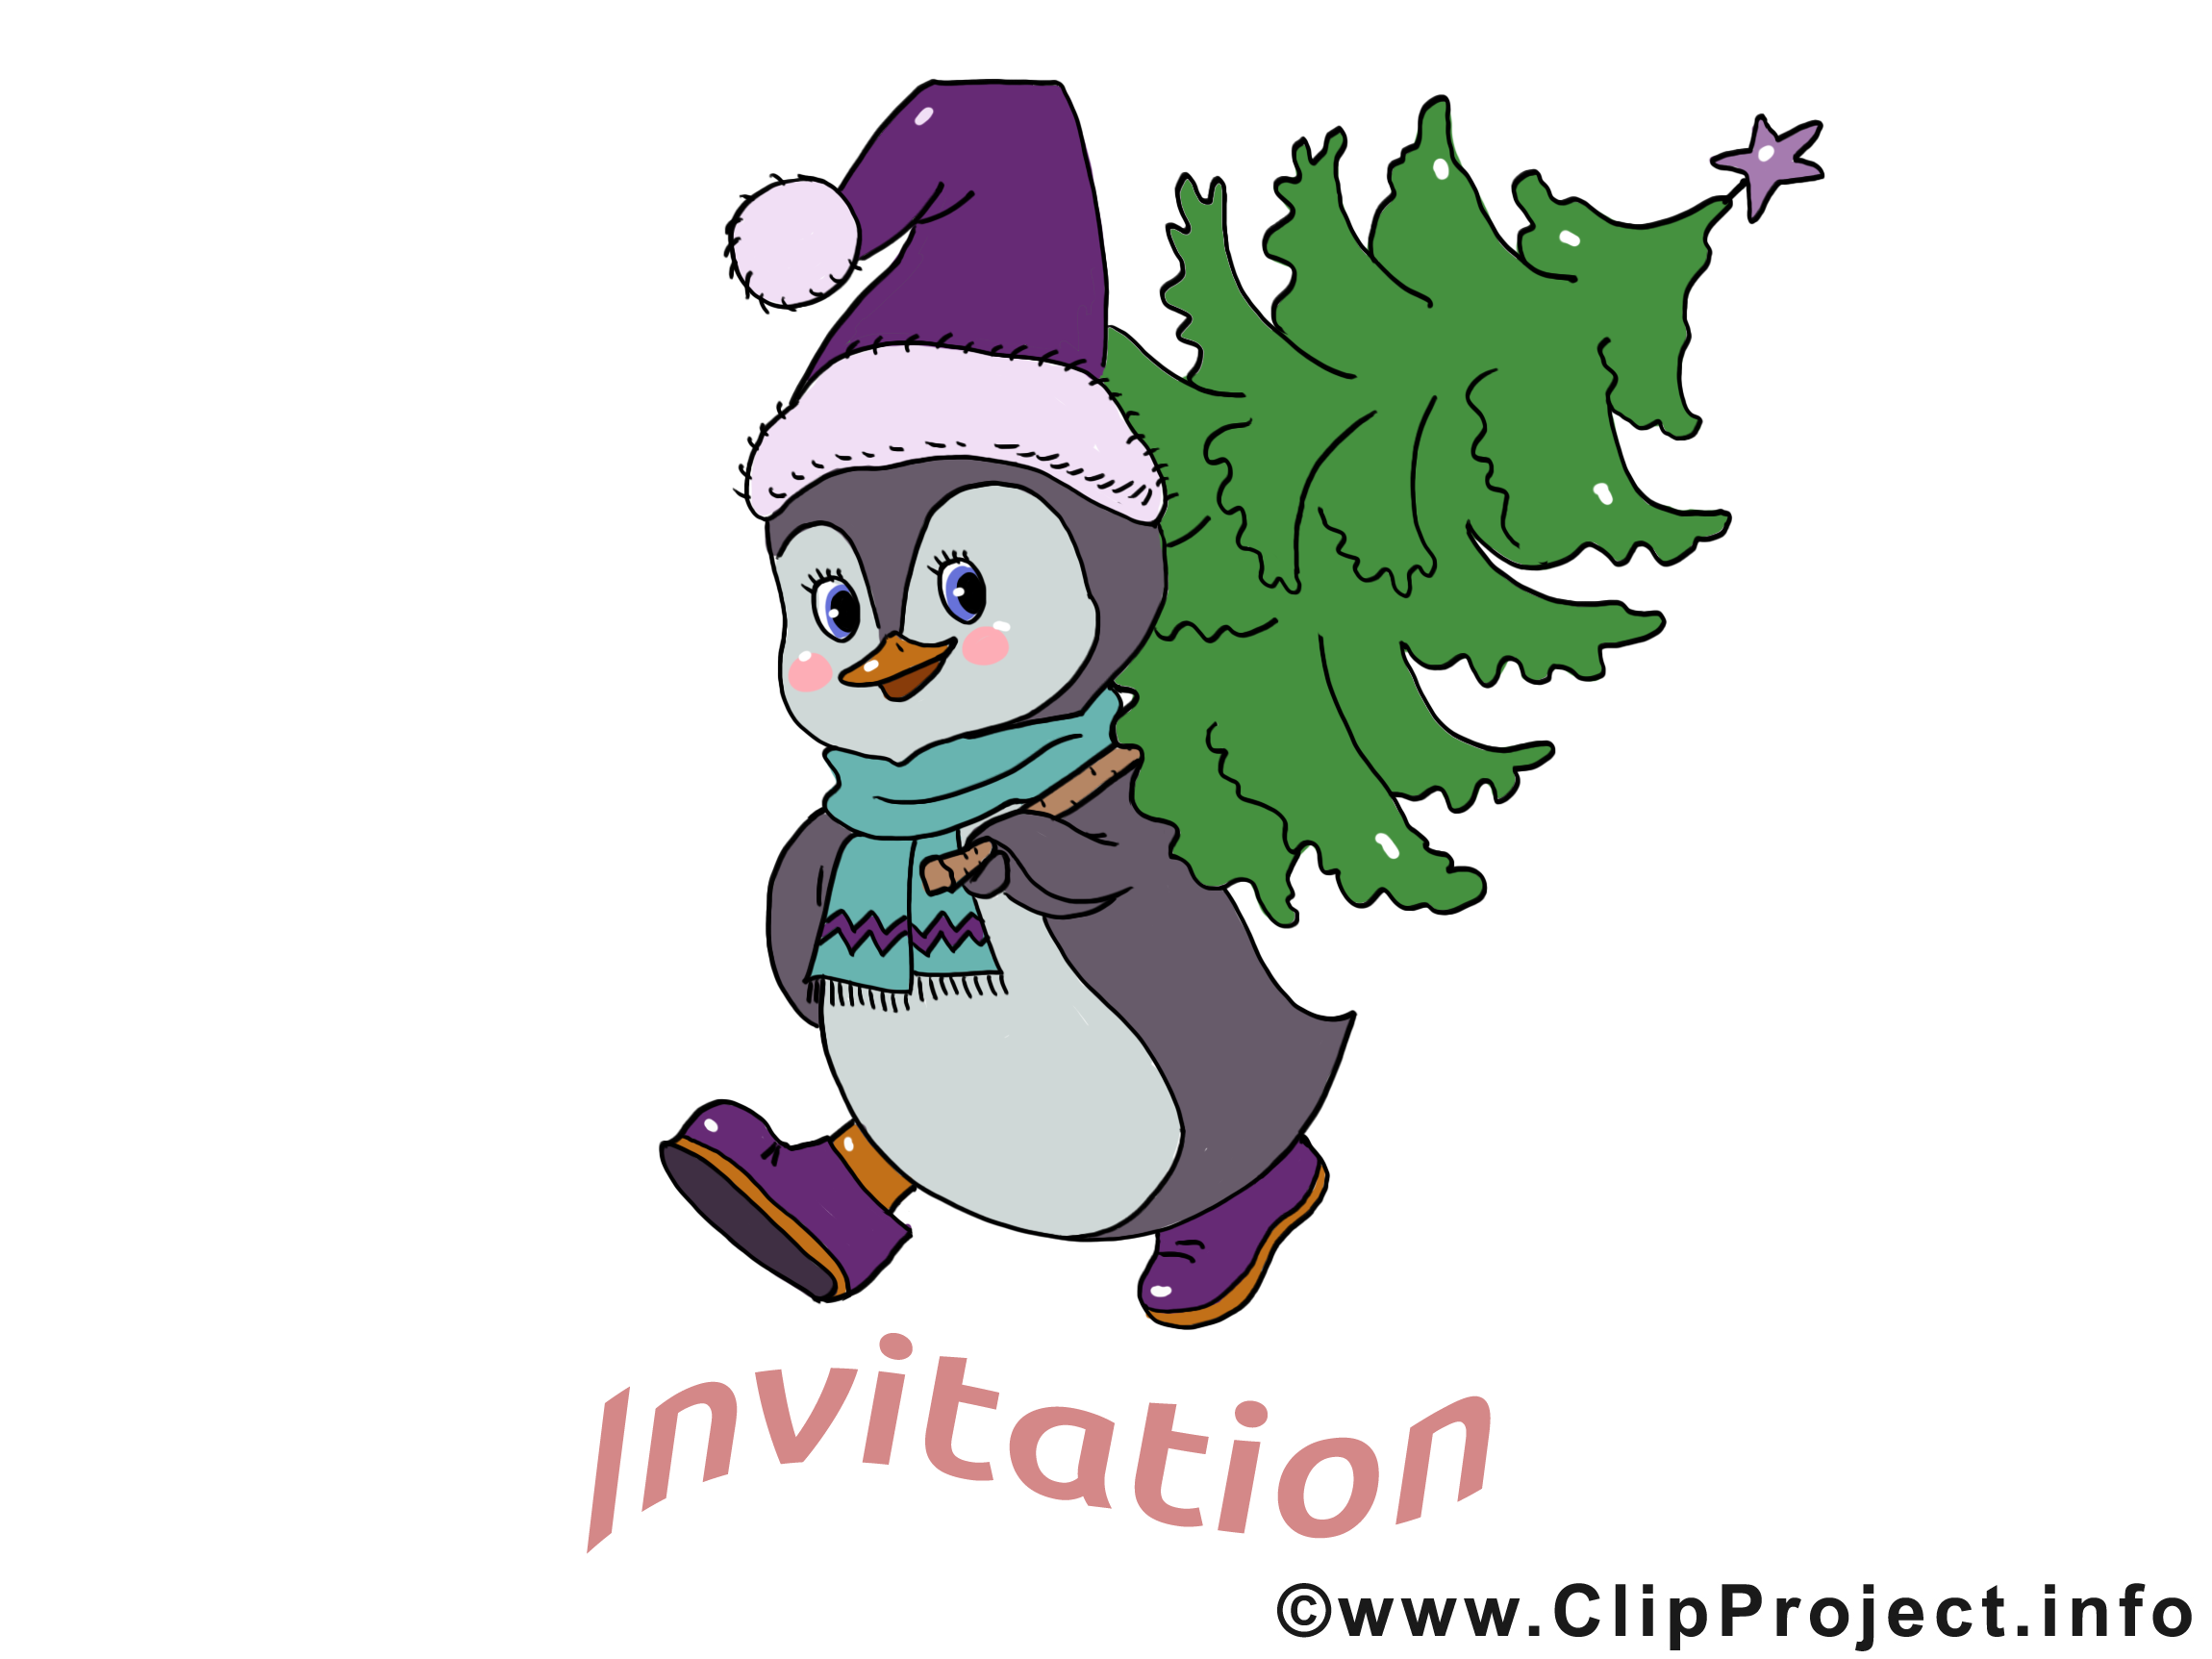 Pingouin dessins gratuits - Invitation clipart